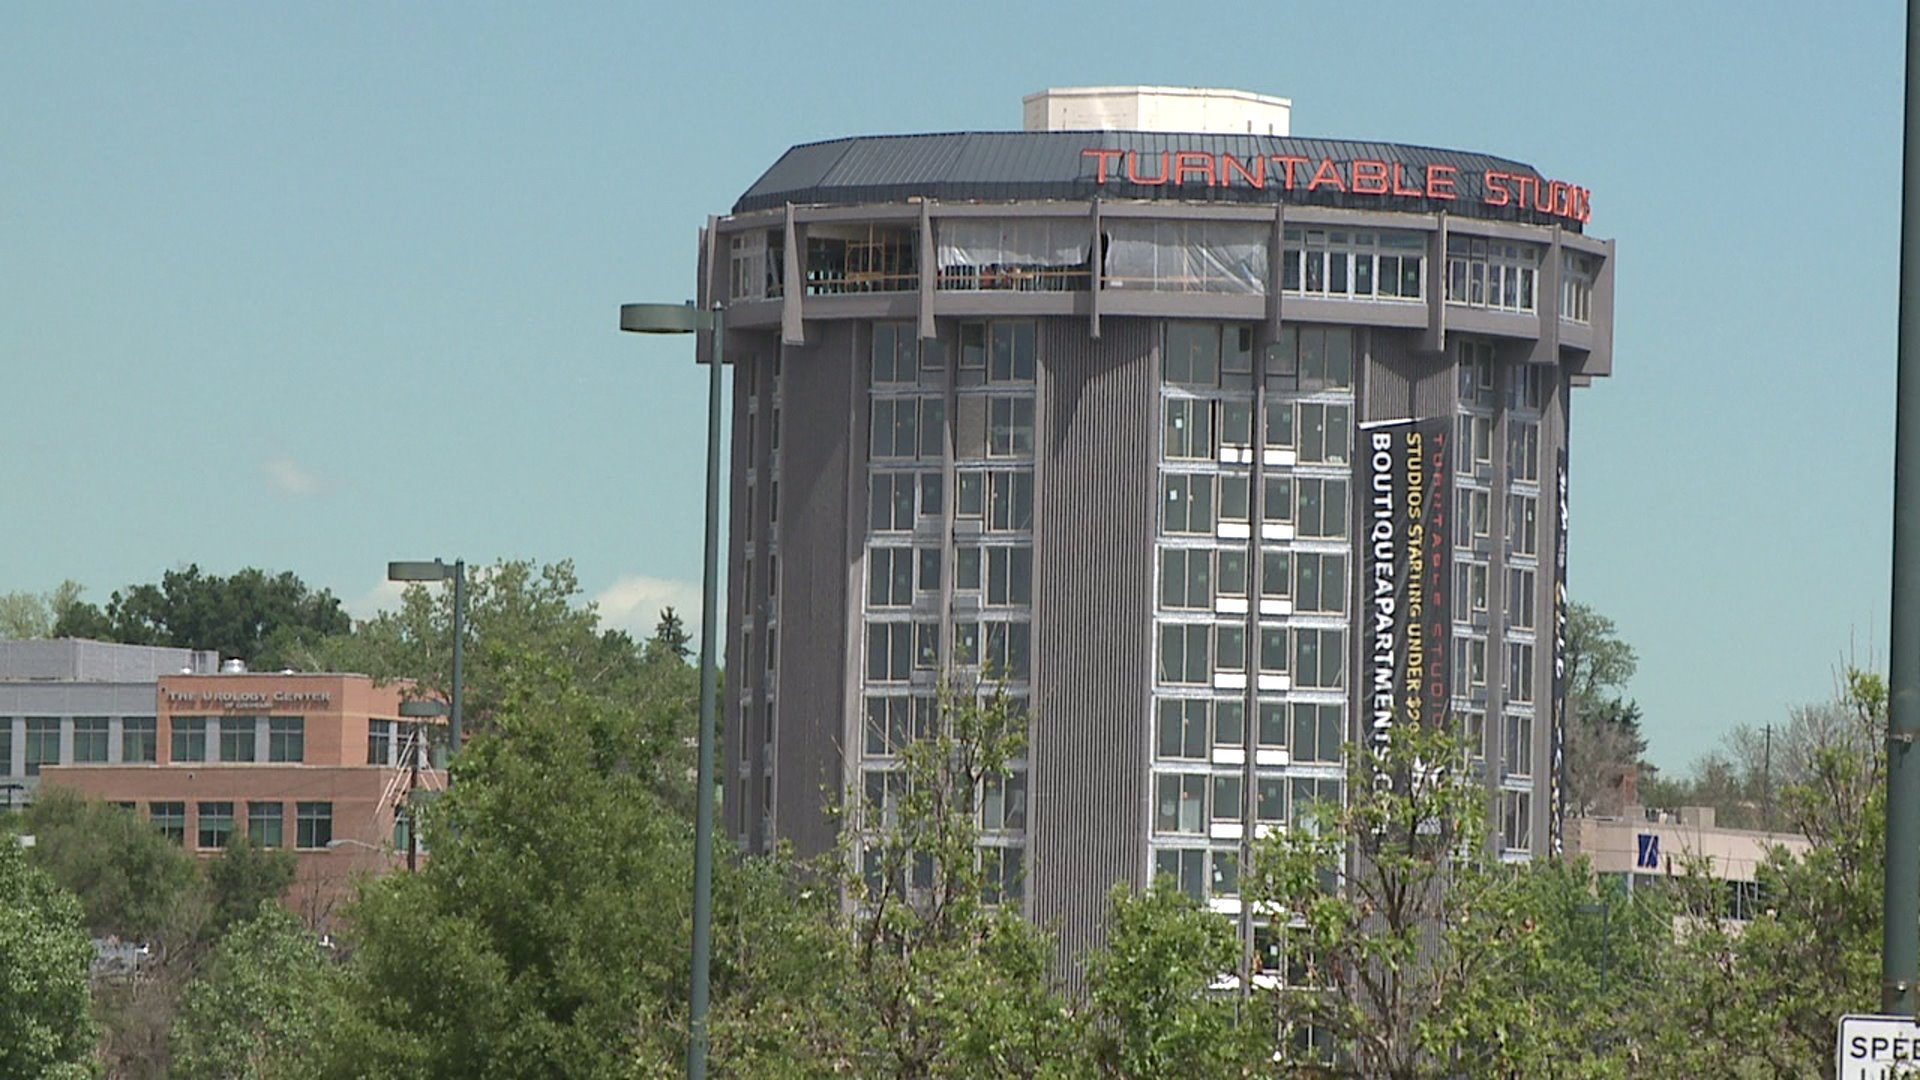 Well-known building next to Sports Authority Field turning ...